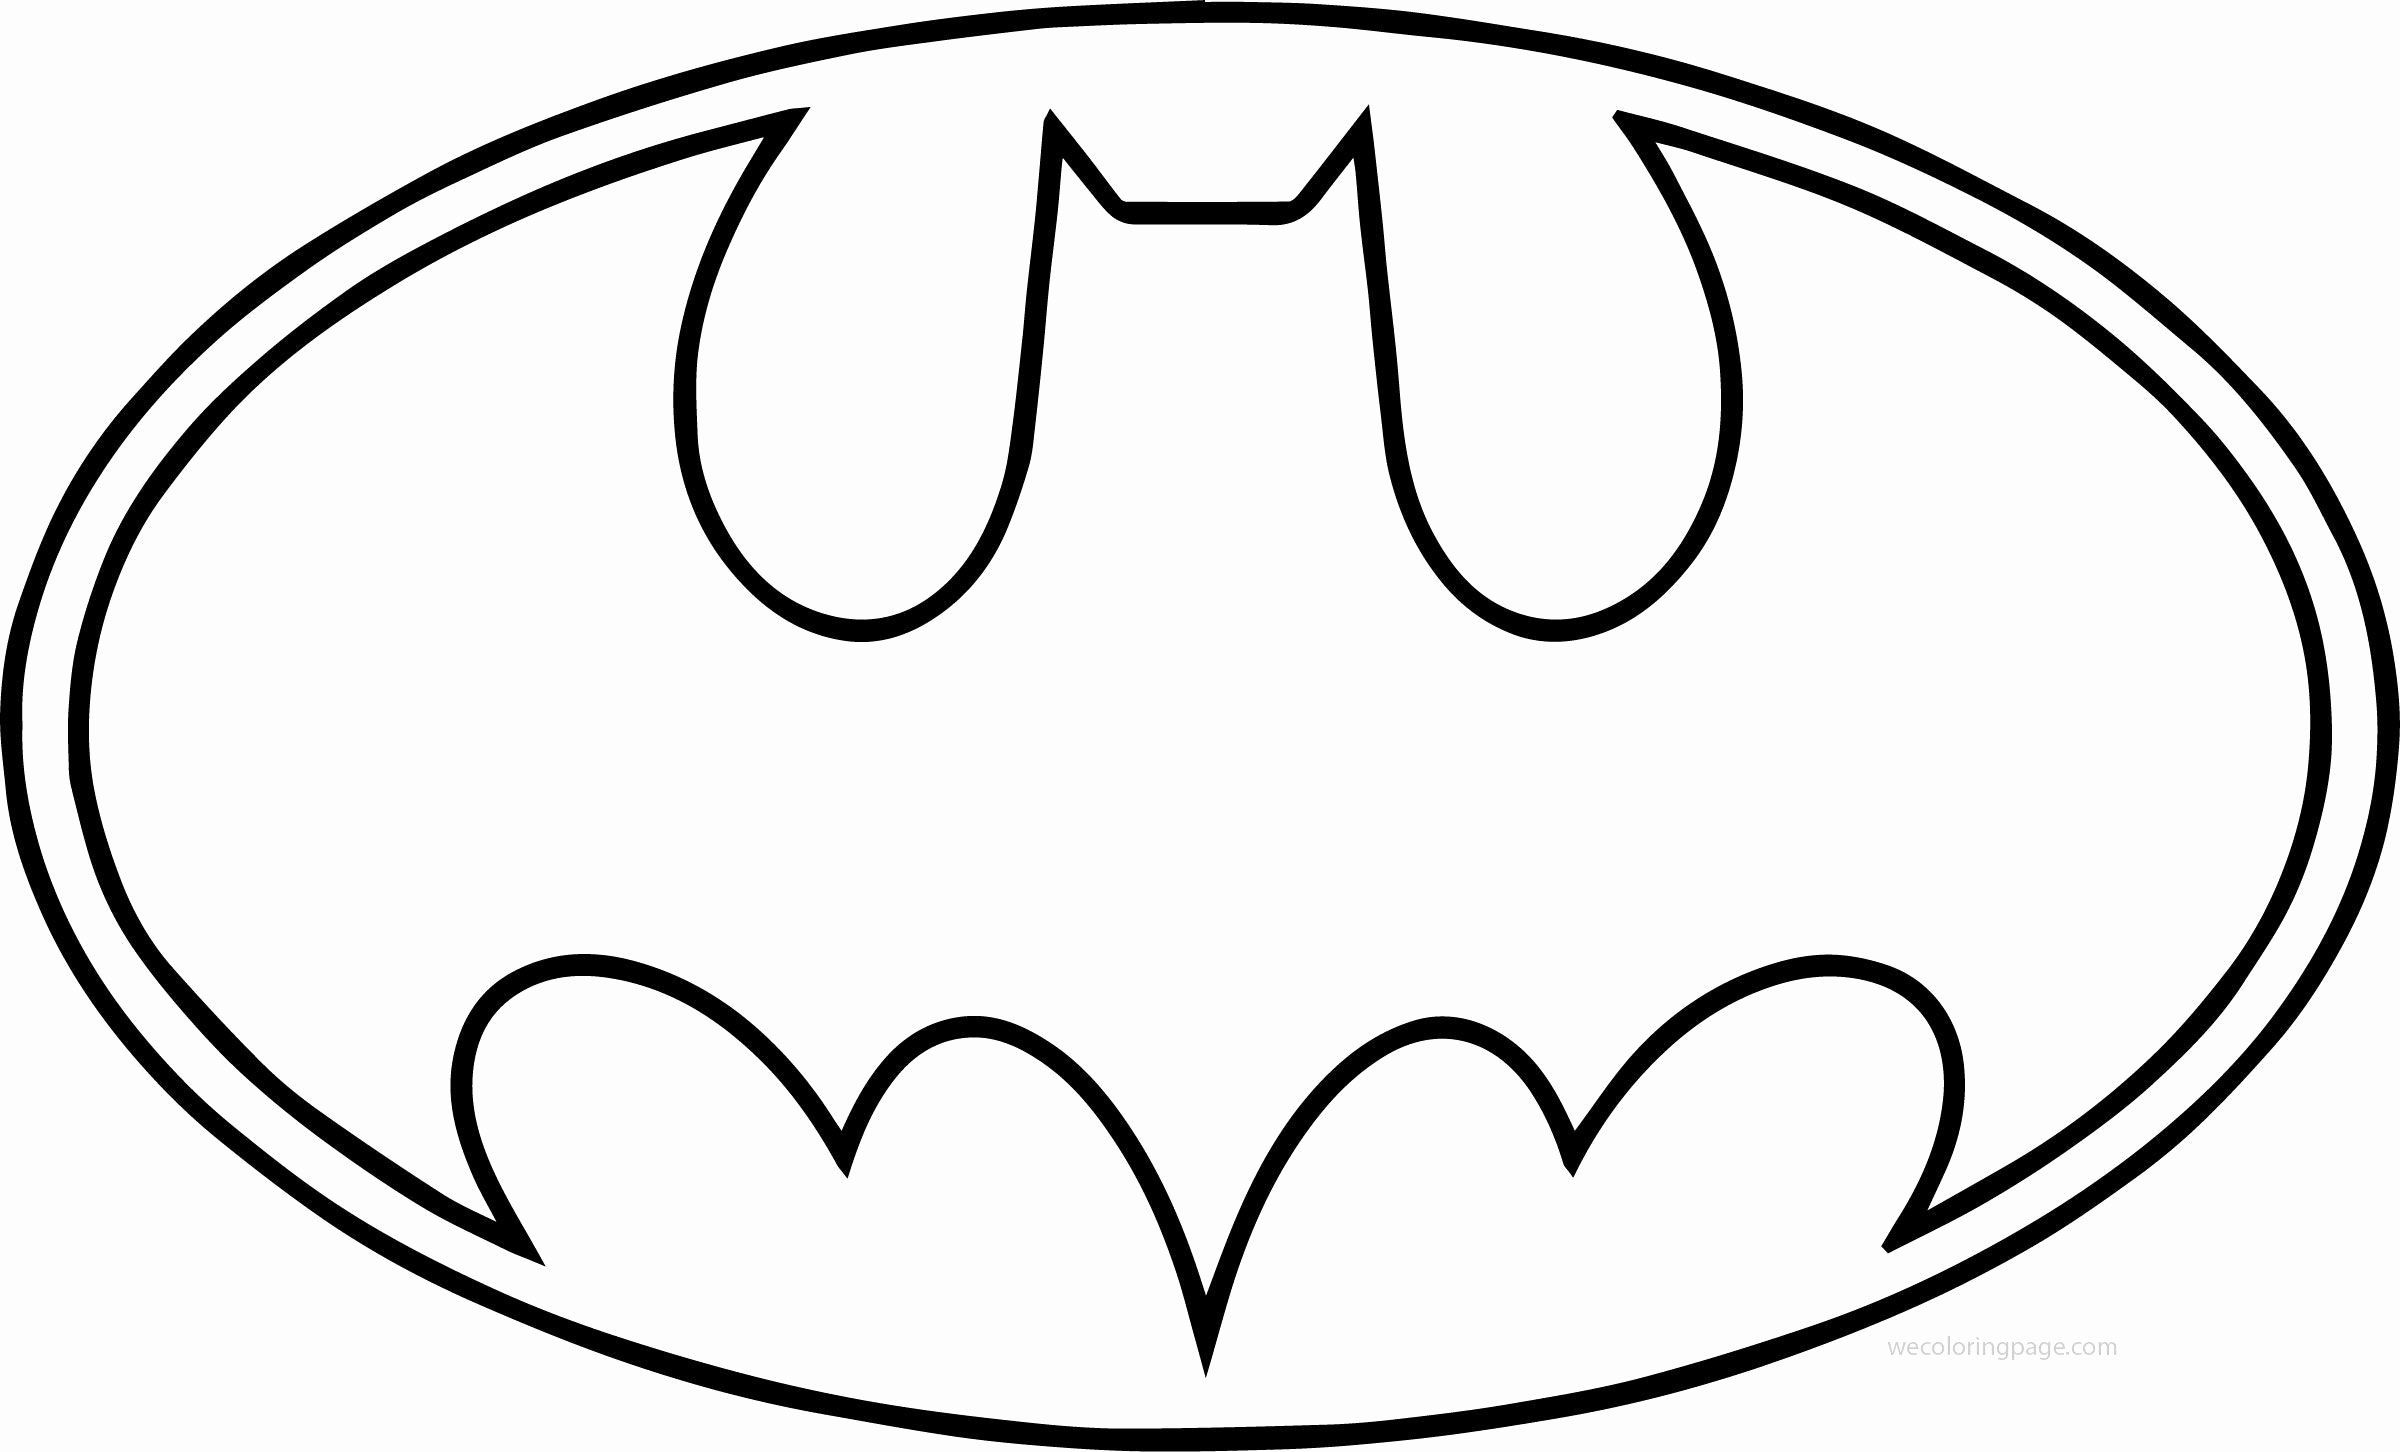 Pin By Miley Geraldine On Logo Coloring Book Art Lego Coloring Pages Batman Coloring Pages